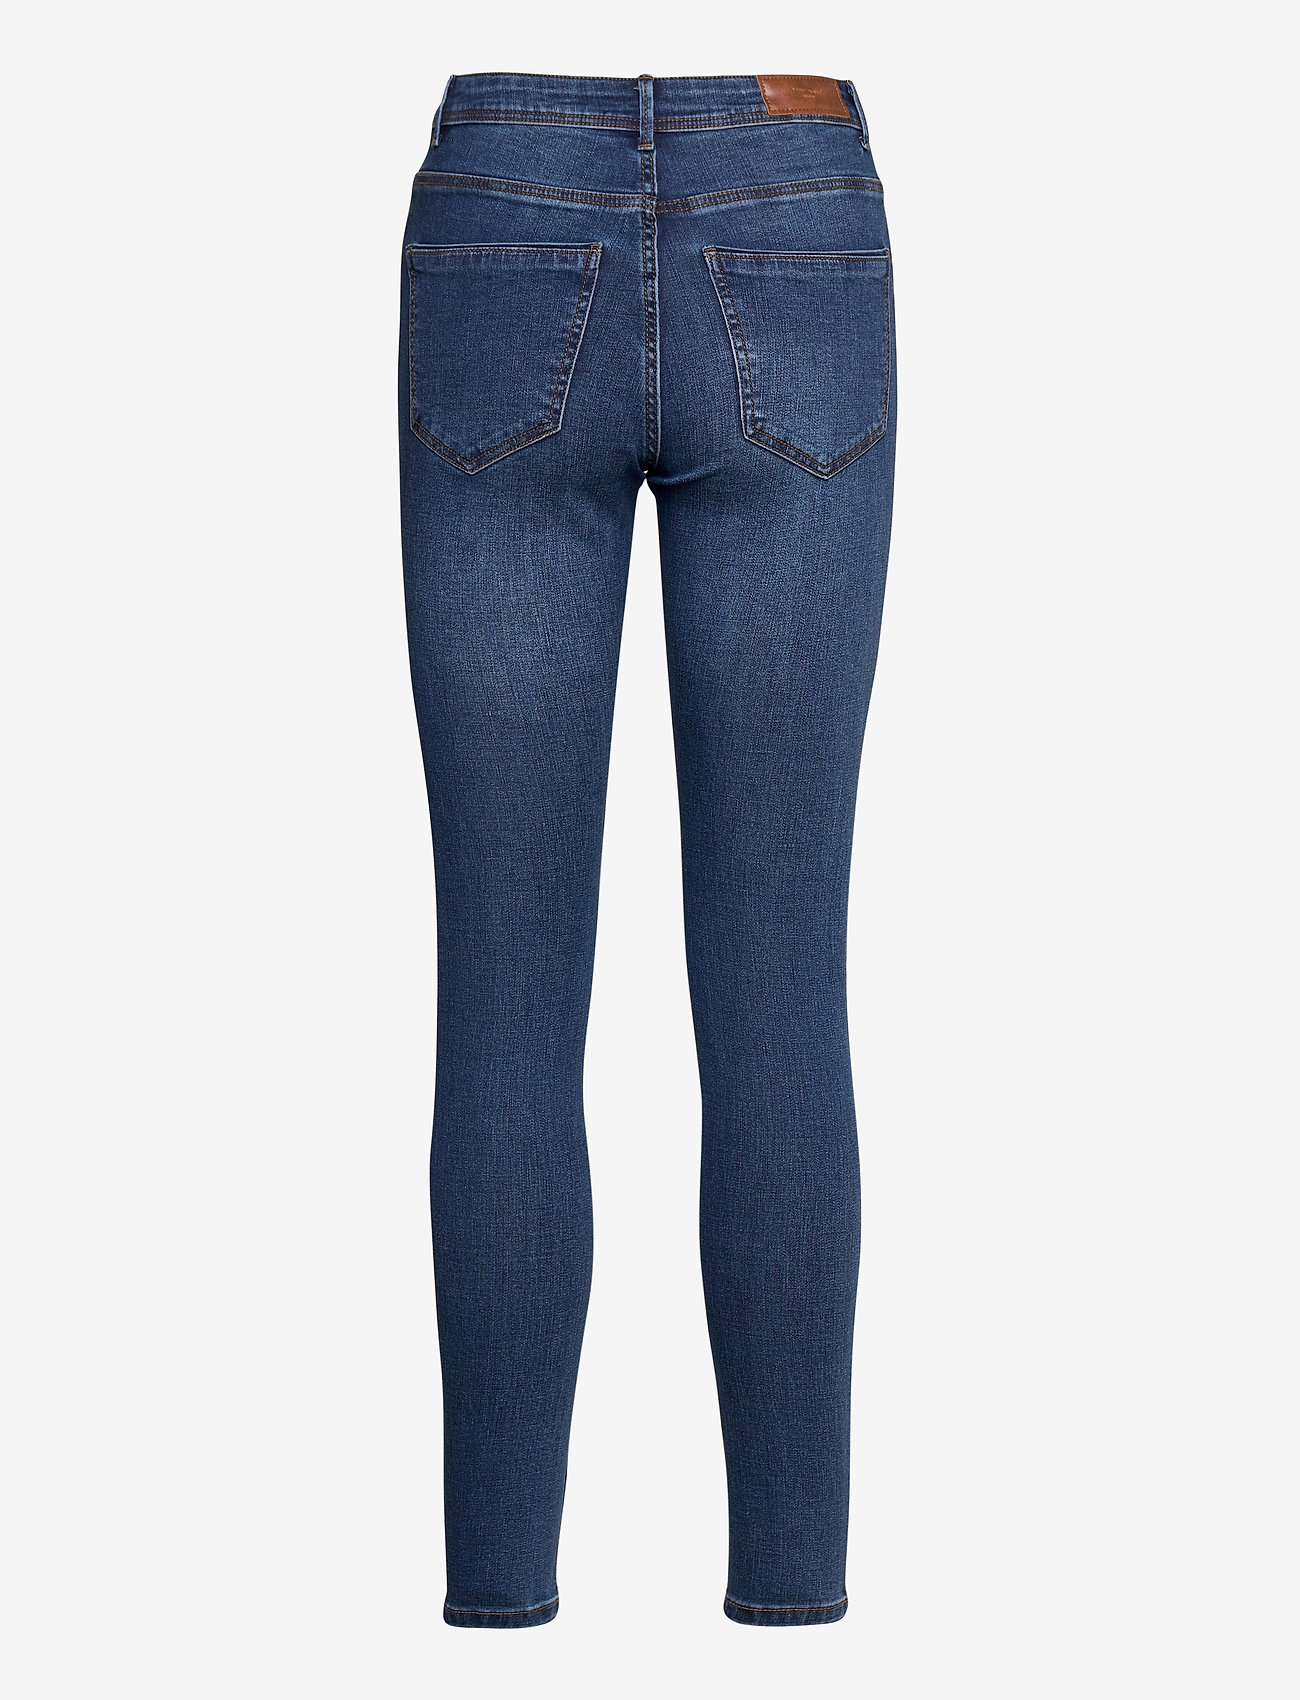 Vero Moda - VMTANYA MR S PIPING JEANS VI369 - slim jeans - dark blue denim - 1